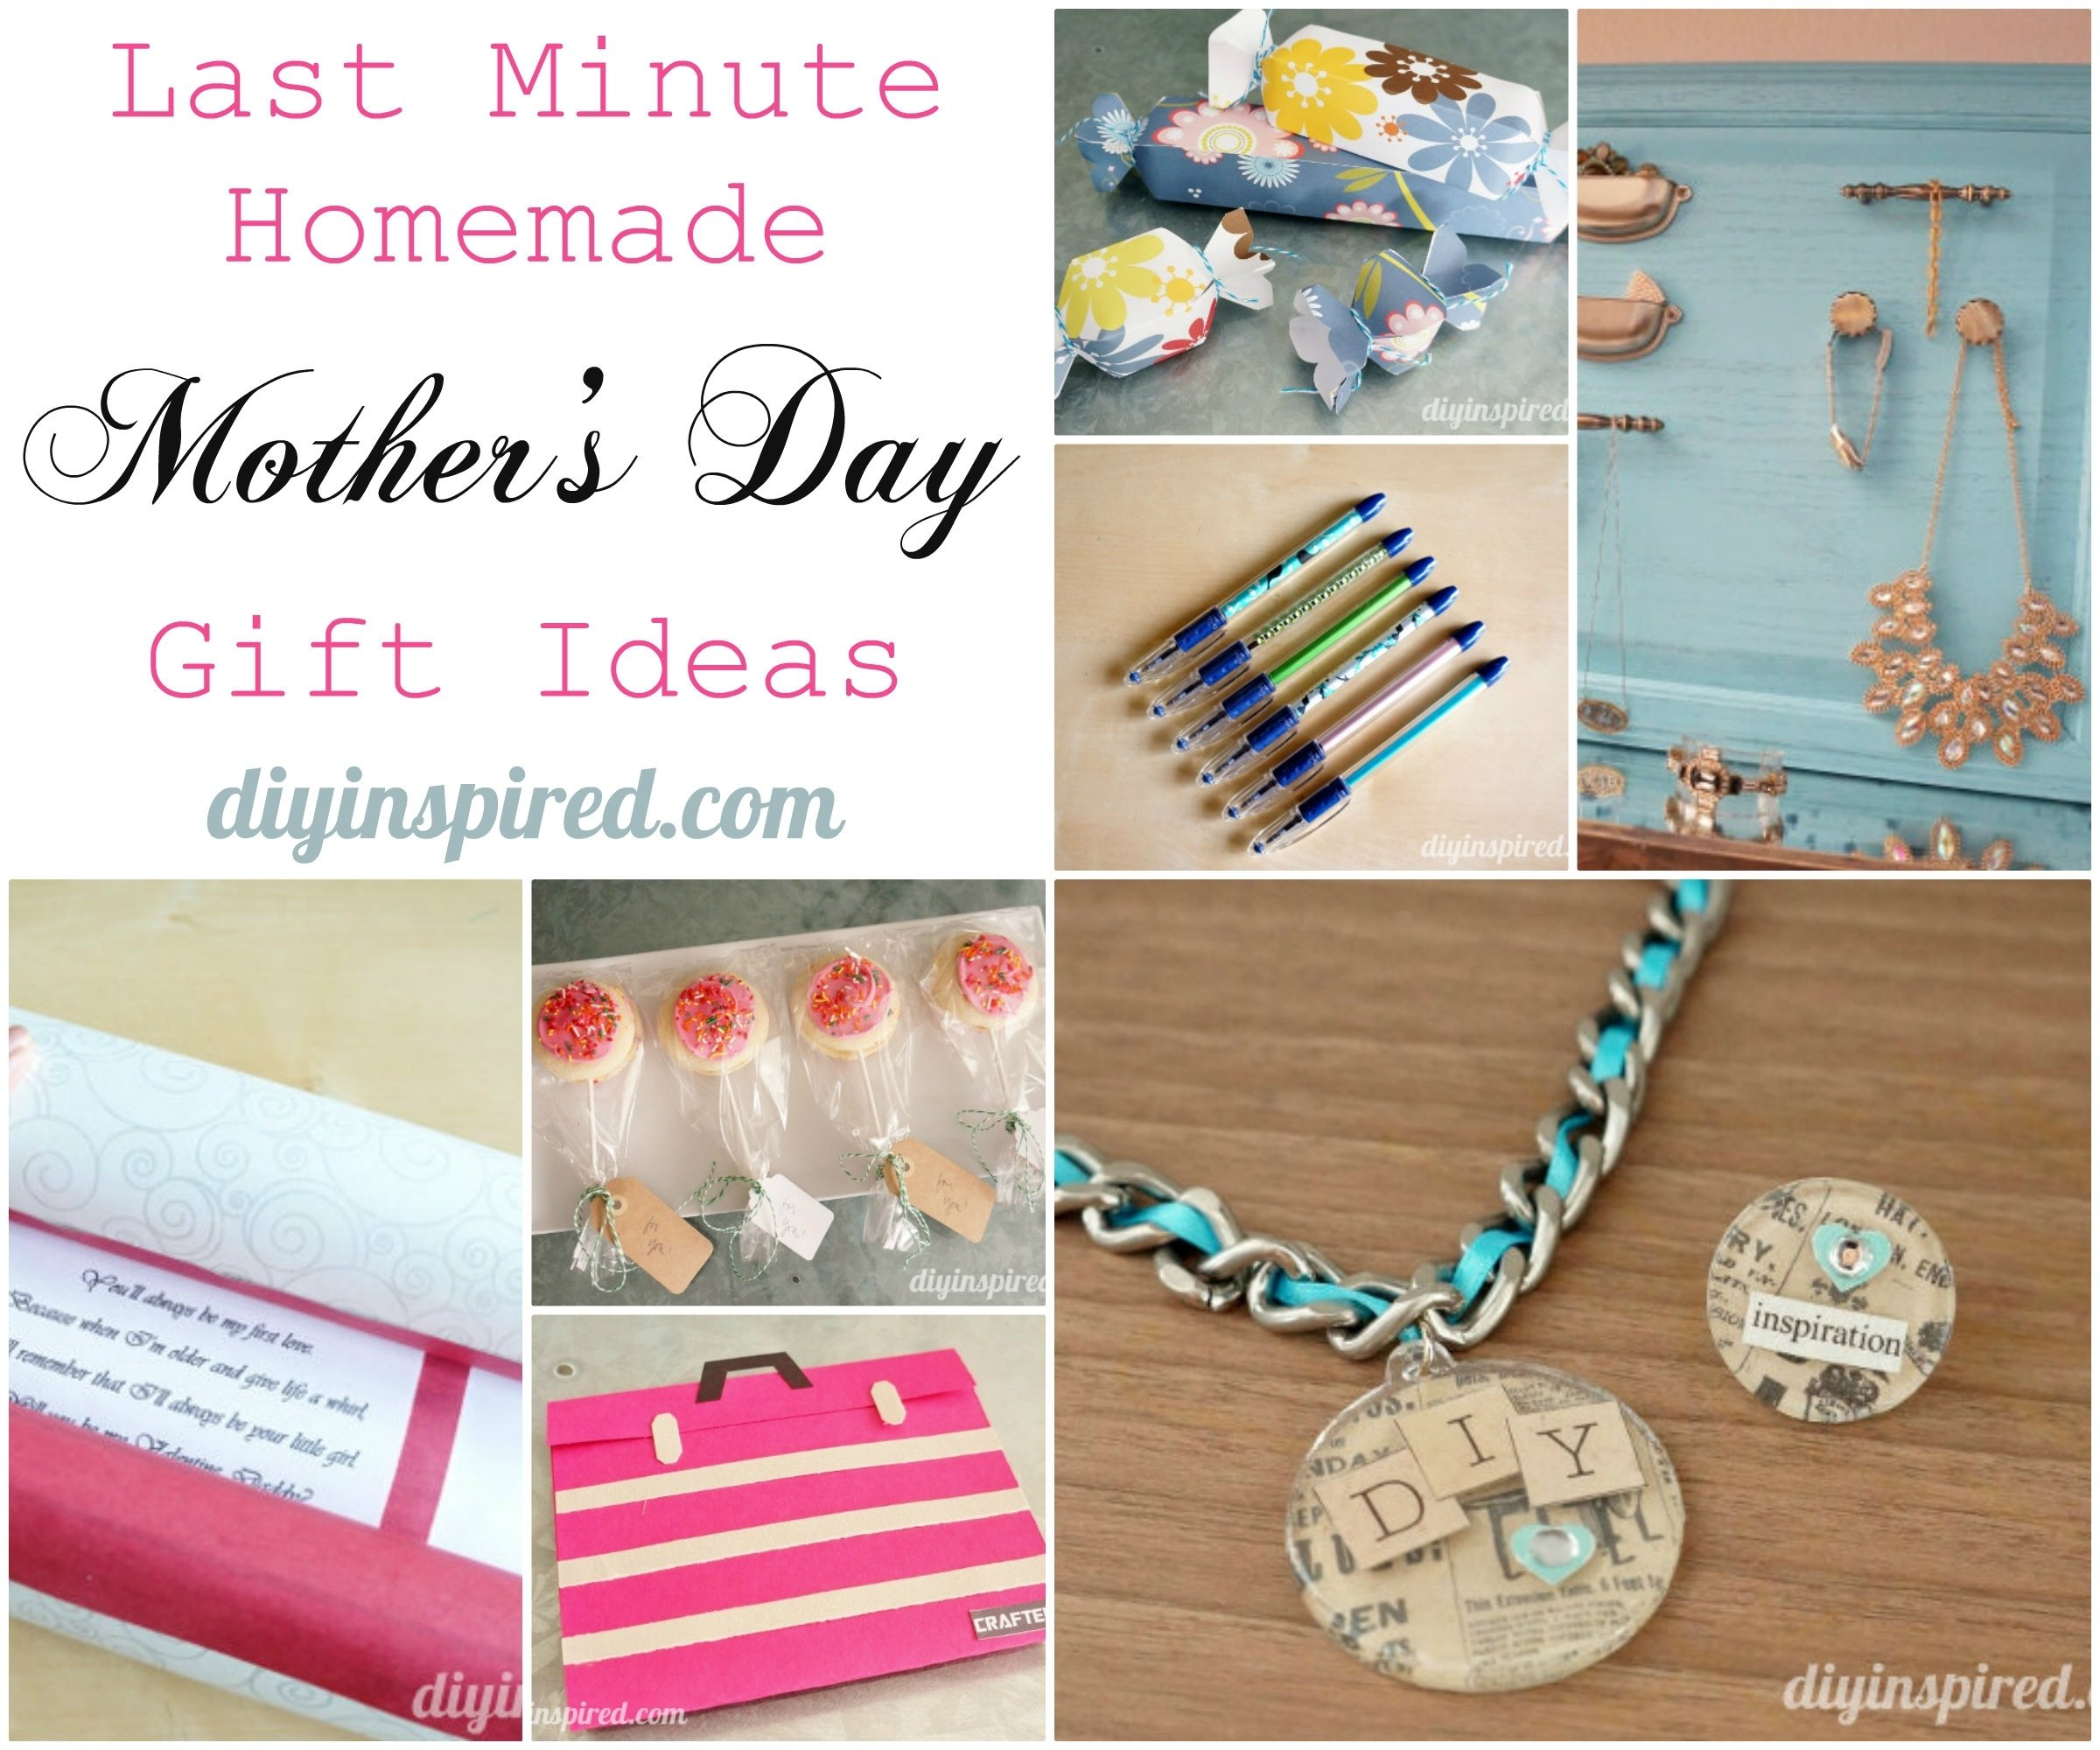 10 Ideal Last Minute Mother Day Gift Ideas last minute homemade mothers day gift ideas diy inspired 6